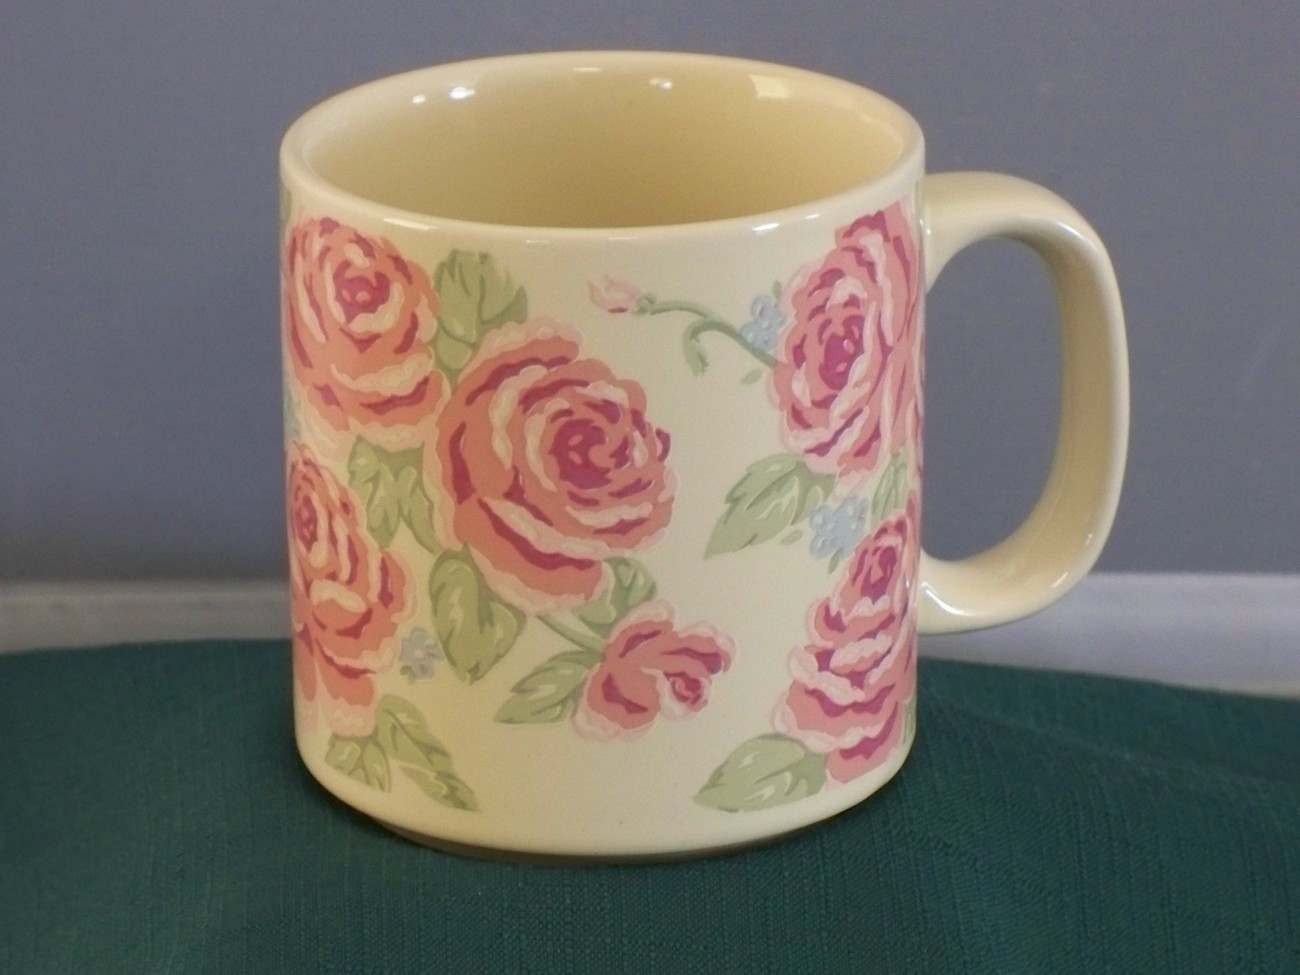 Midwest Cannon Falls Rose Coffee Mug 10 Oz  VGC